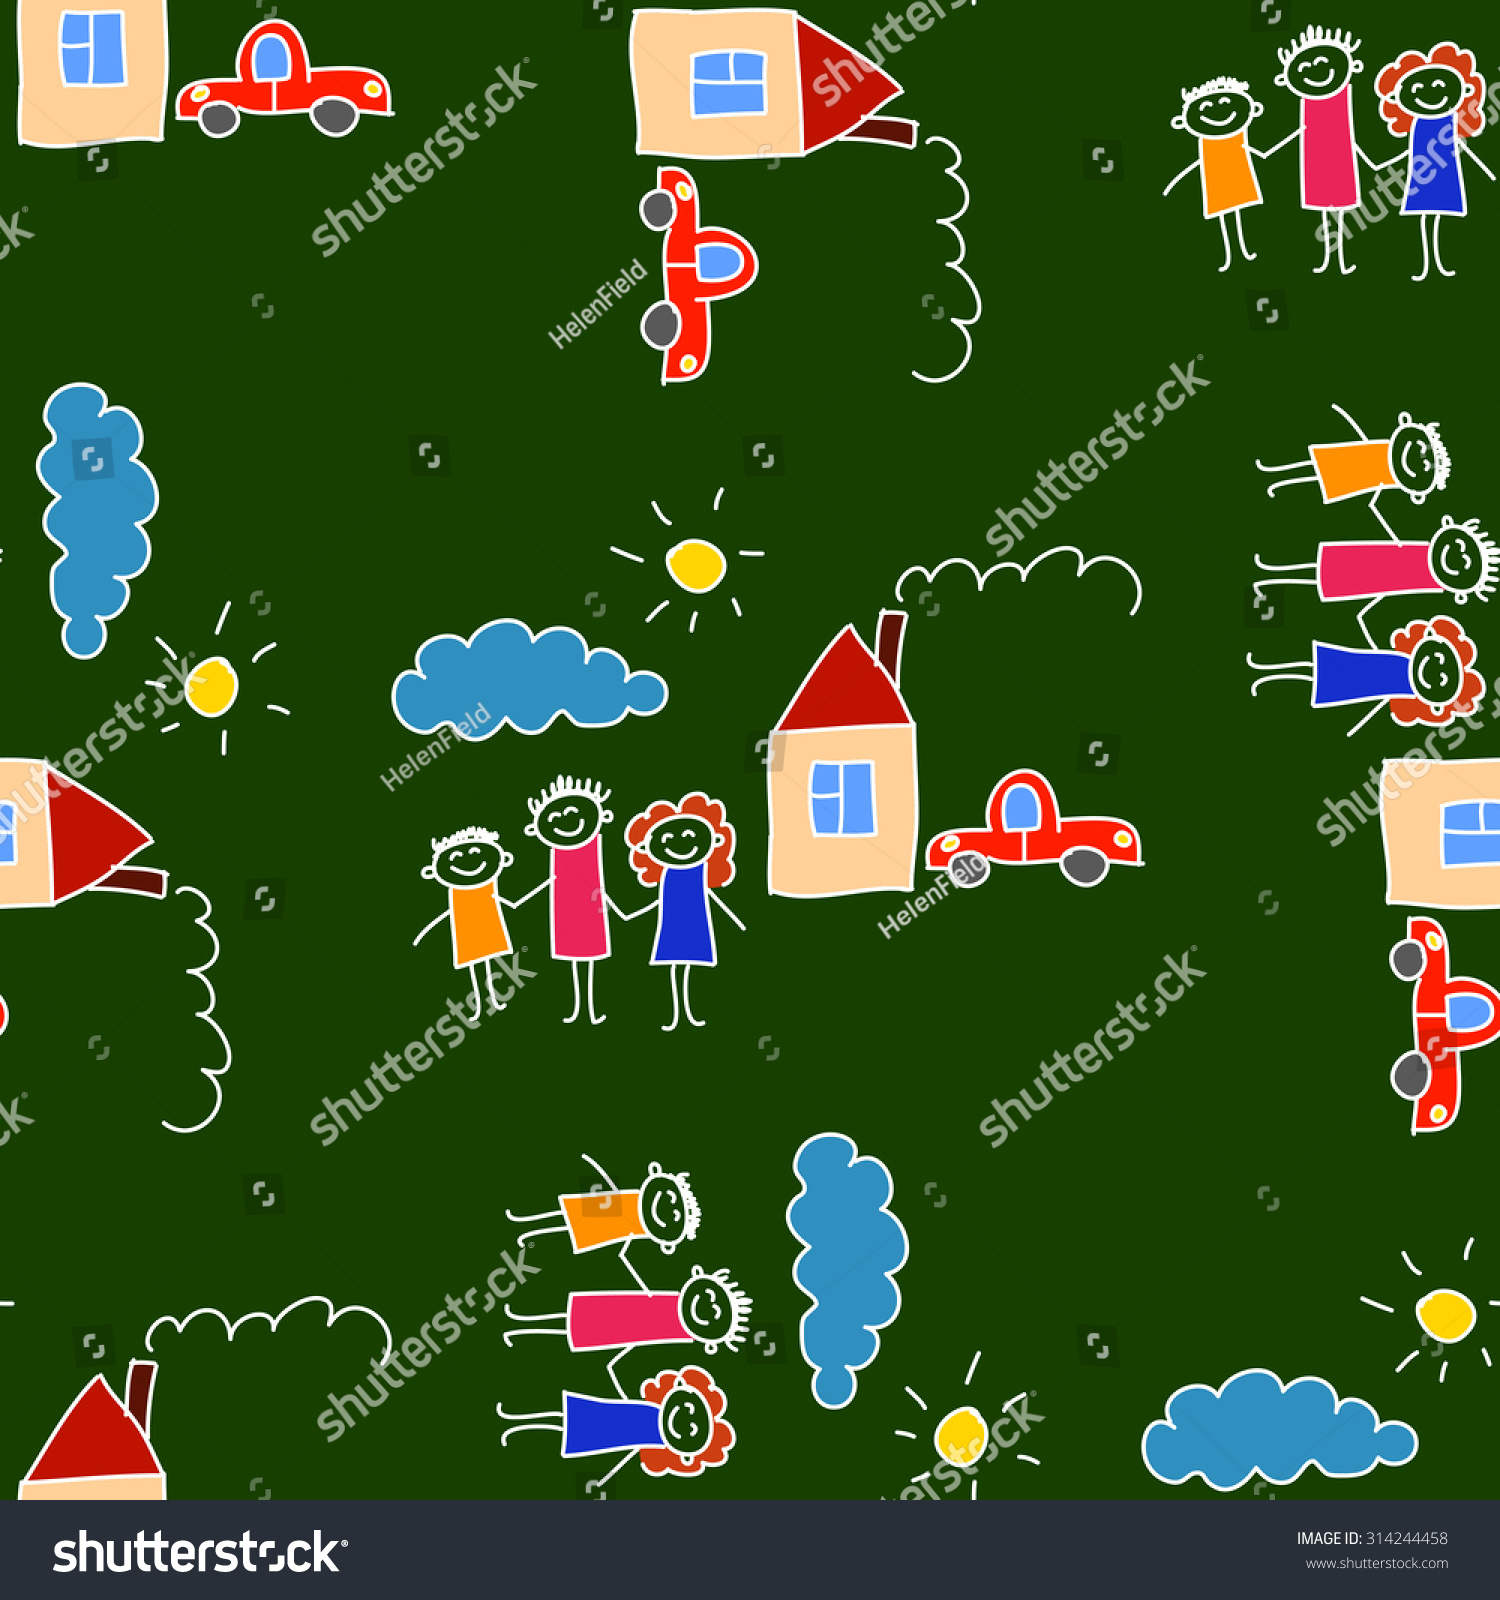 Colorful Seamless Vector Pattern Green Blackboard Kids Drawing